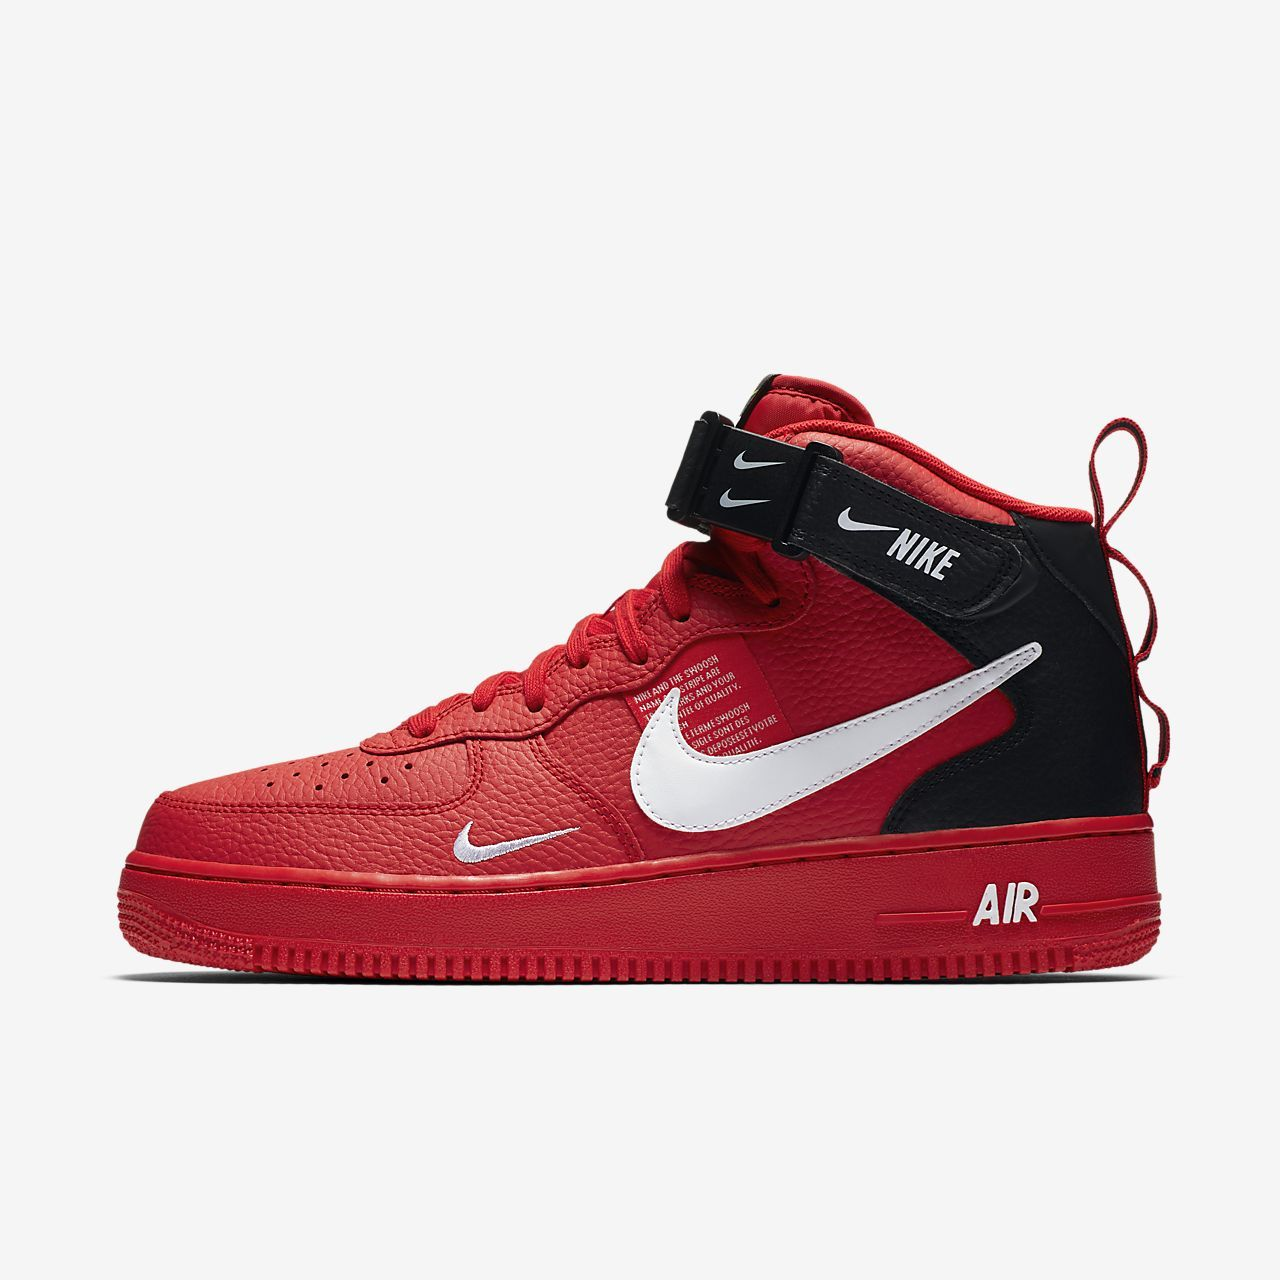 reputable site cc706 798a0 Nike Air Force 1 07 Mid LV8 Mens Shoe